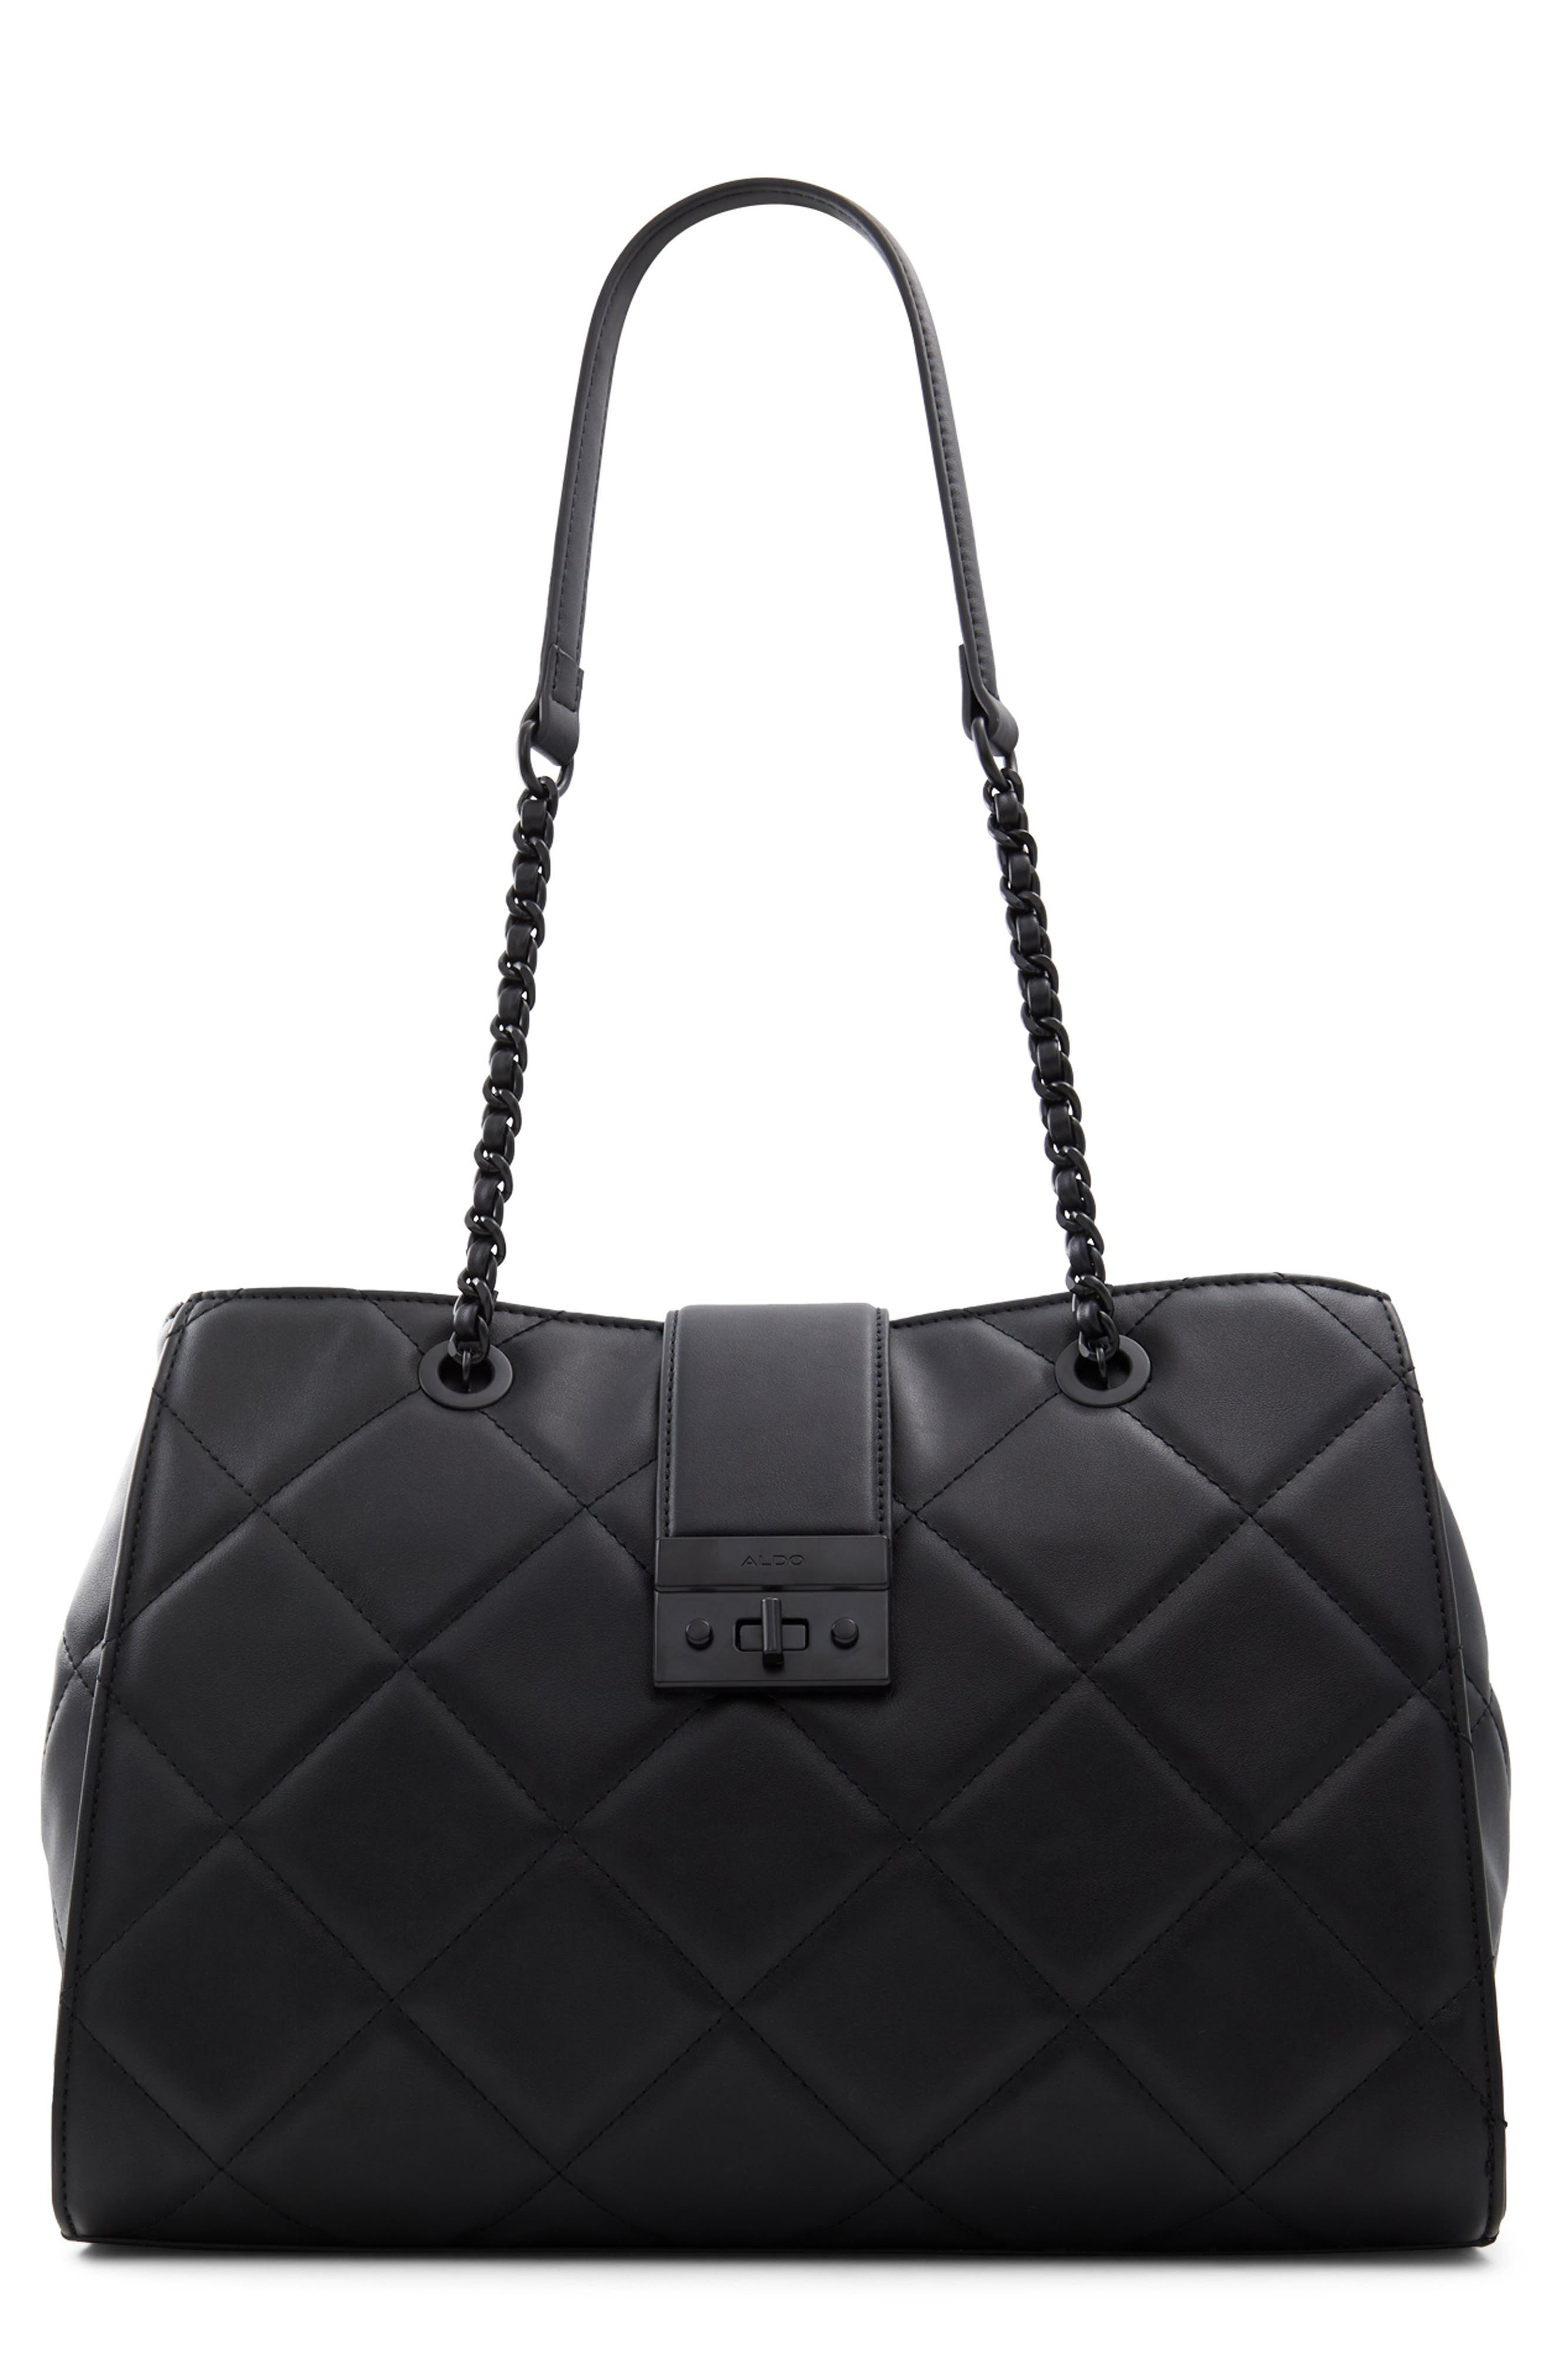 Alaevenn Quilted Tote Bag